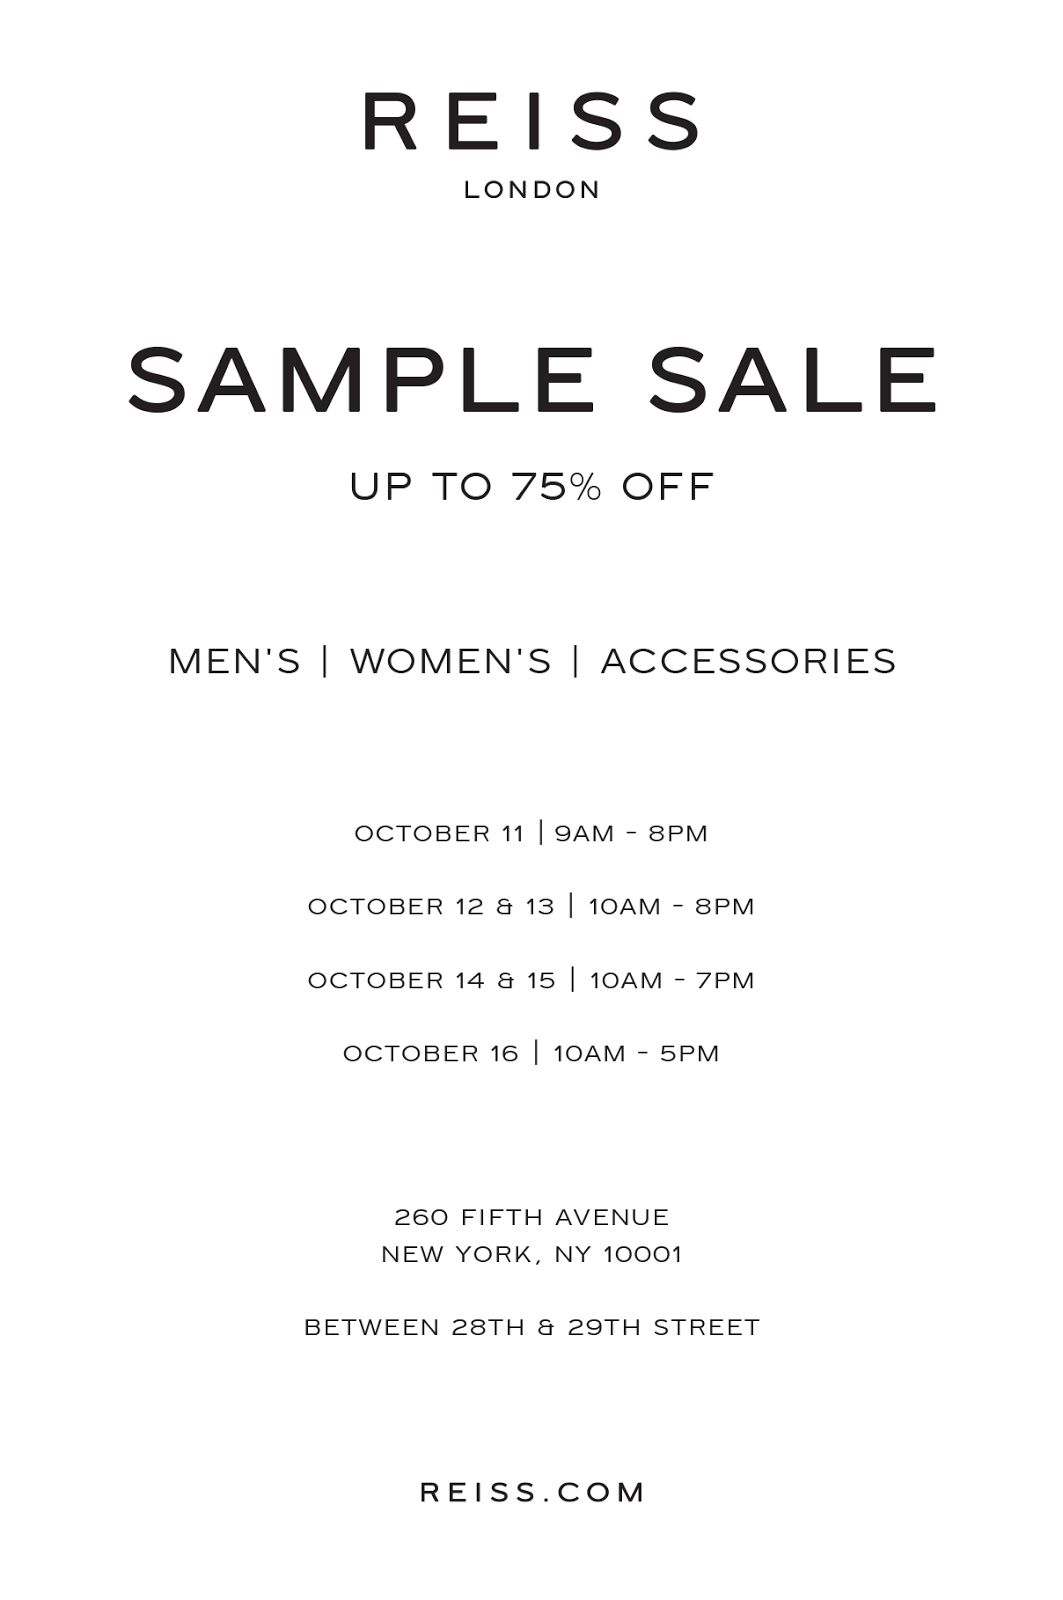 fashionably petite: Reiss London Sample Sale - 10/11 - 10/16/16